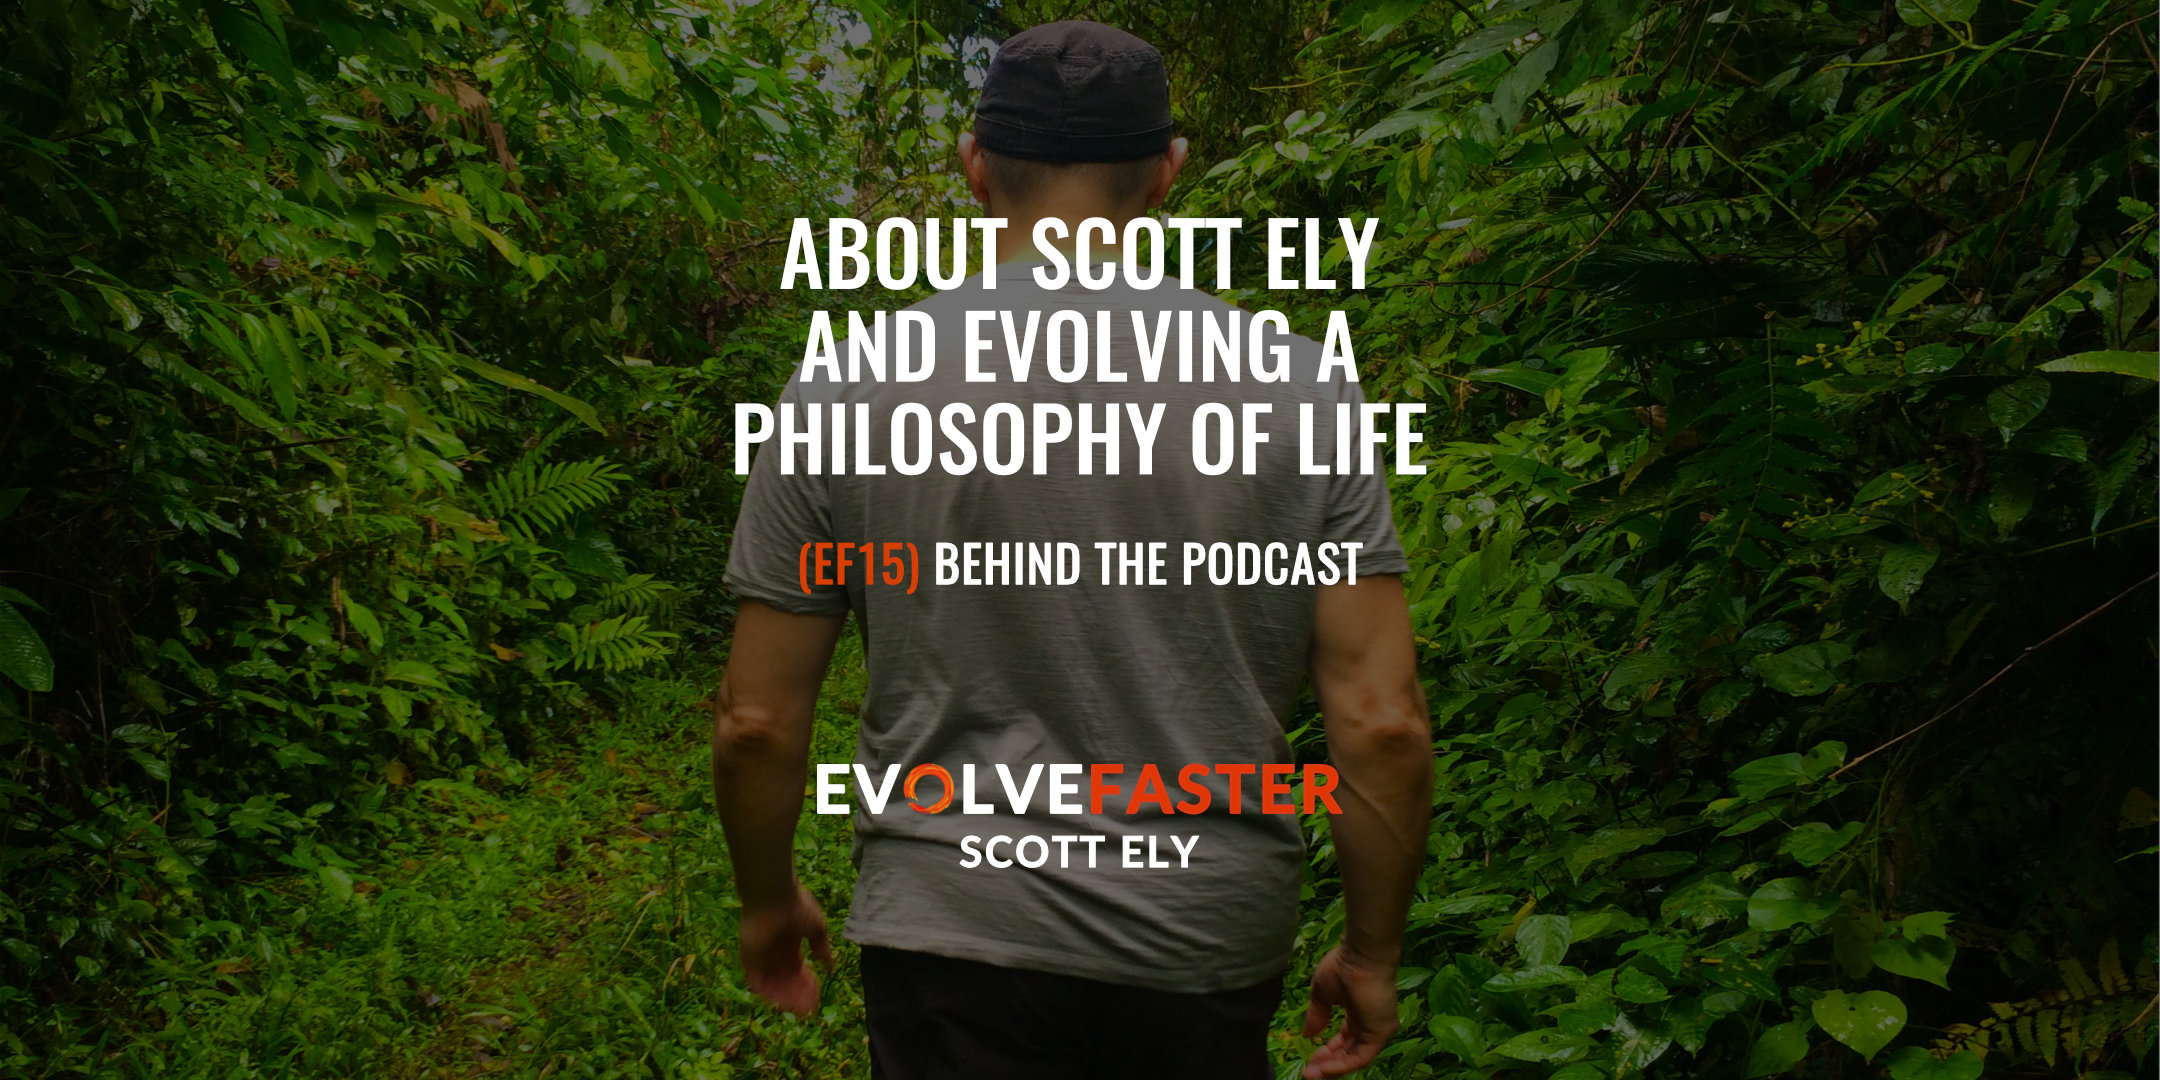 (EF15) BTP-AMA: Behind the Podcast About Scott Ely and Evolving a Philosophy for Life